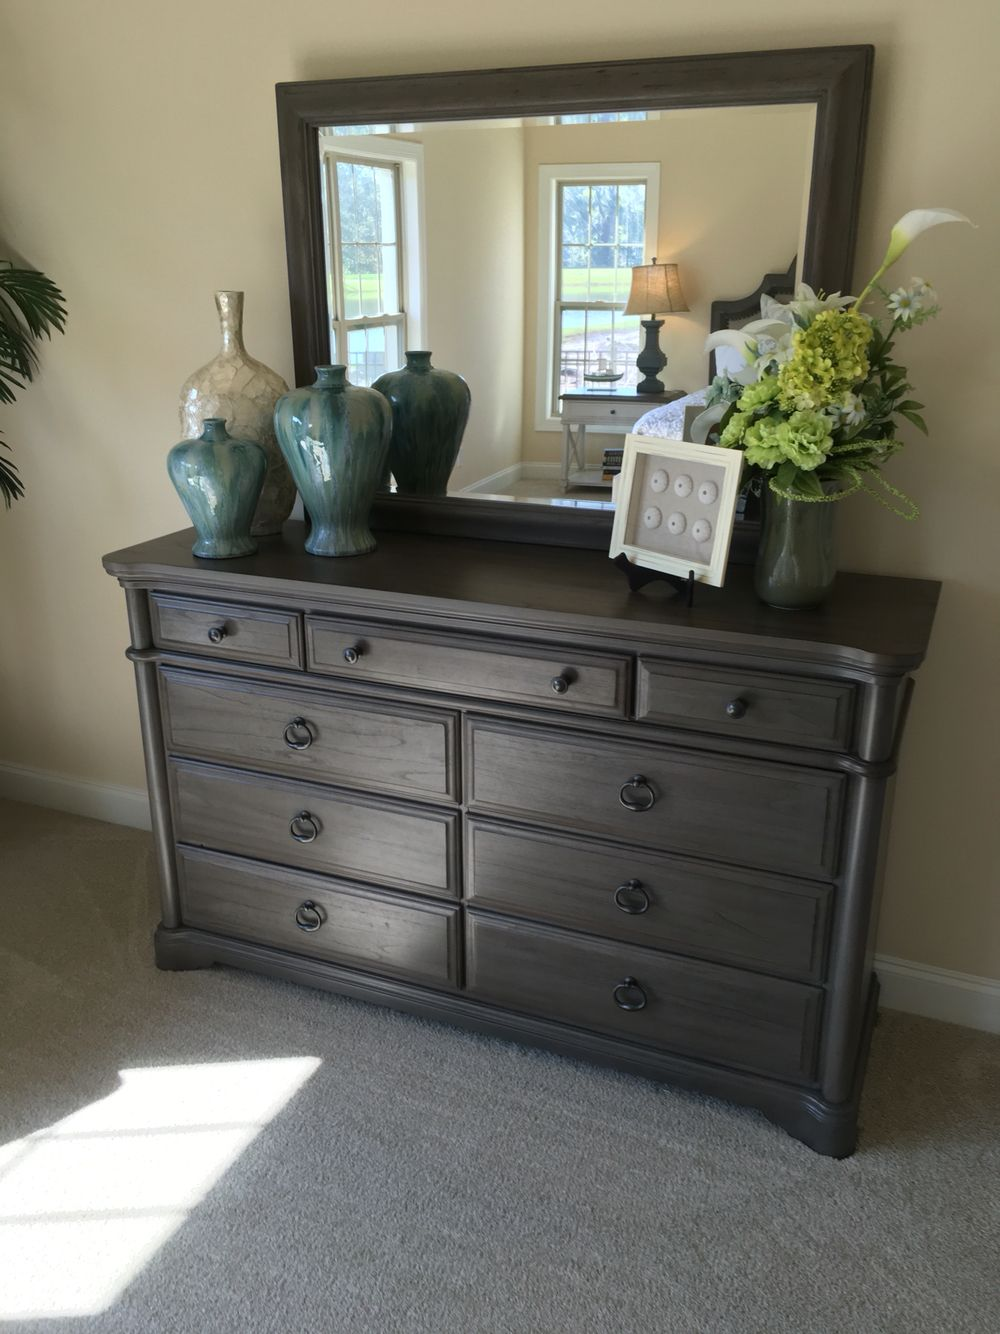 How to stage a dresser   Bedrooms   Pinterest   Dresser  Stage and     How to stage a dresser